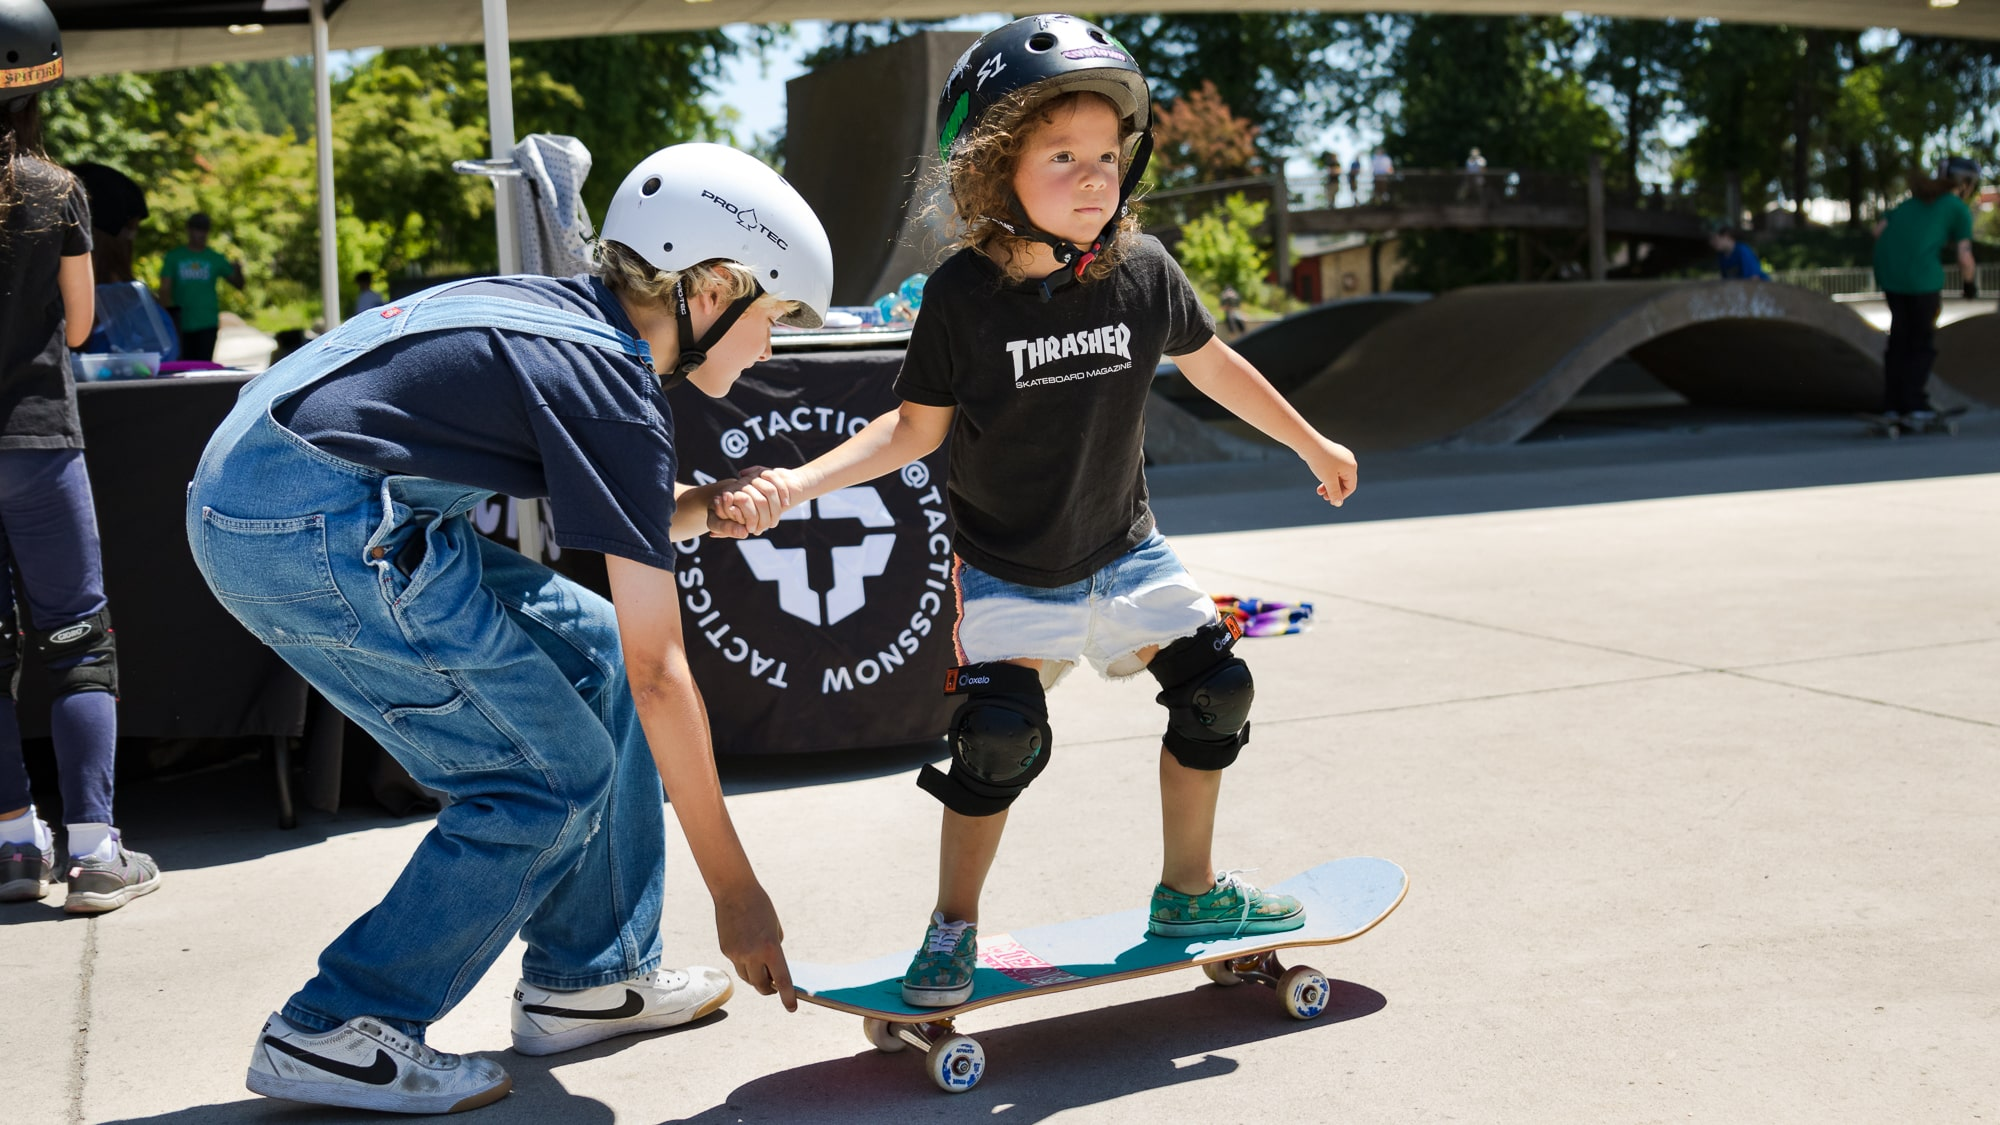 how-to-skateboard-learn-to-skate